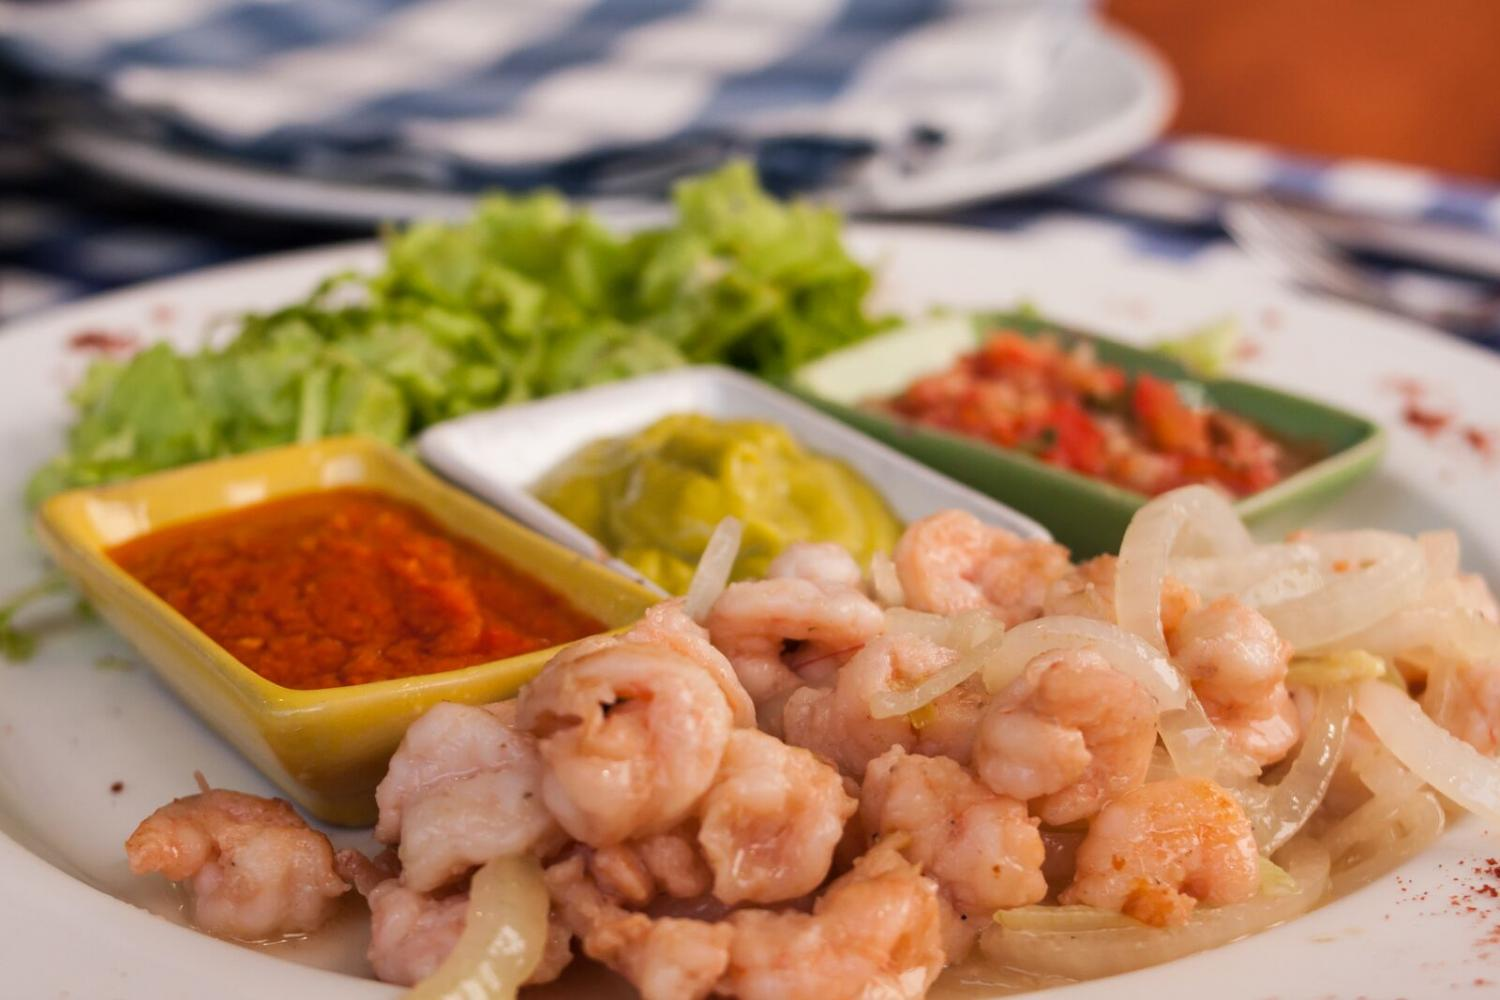 A+shrimp+dish+served+with+two+types+of+salsa+and+avocado.